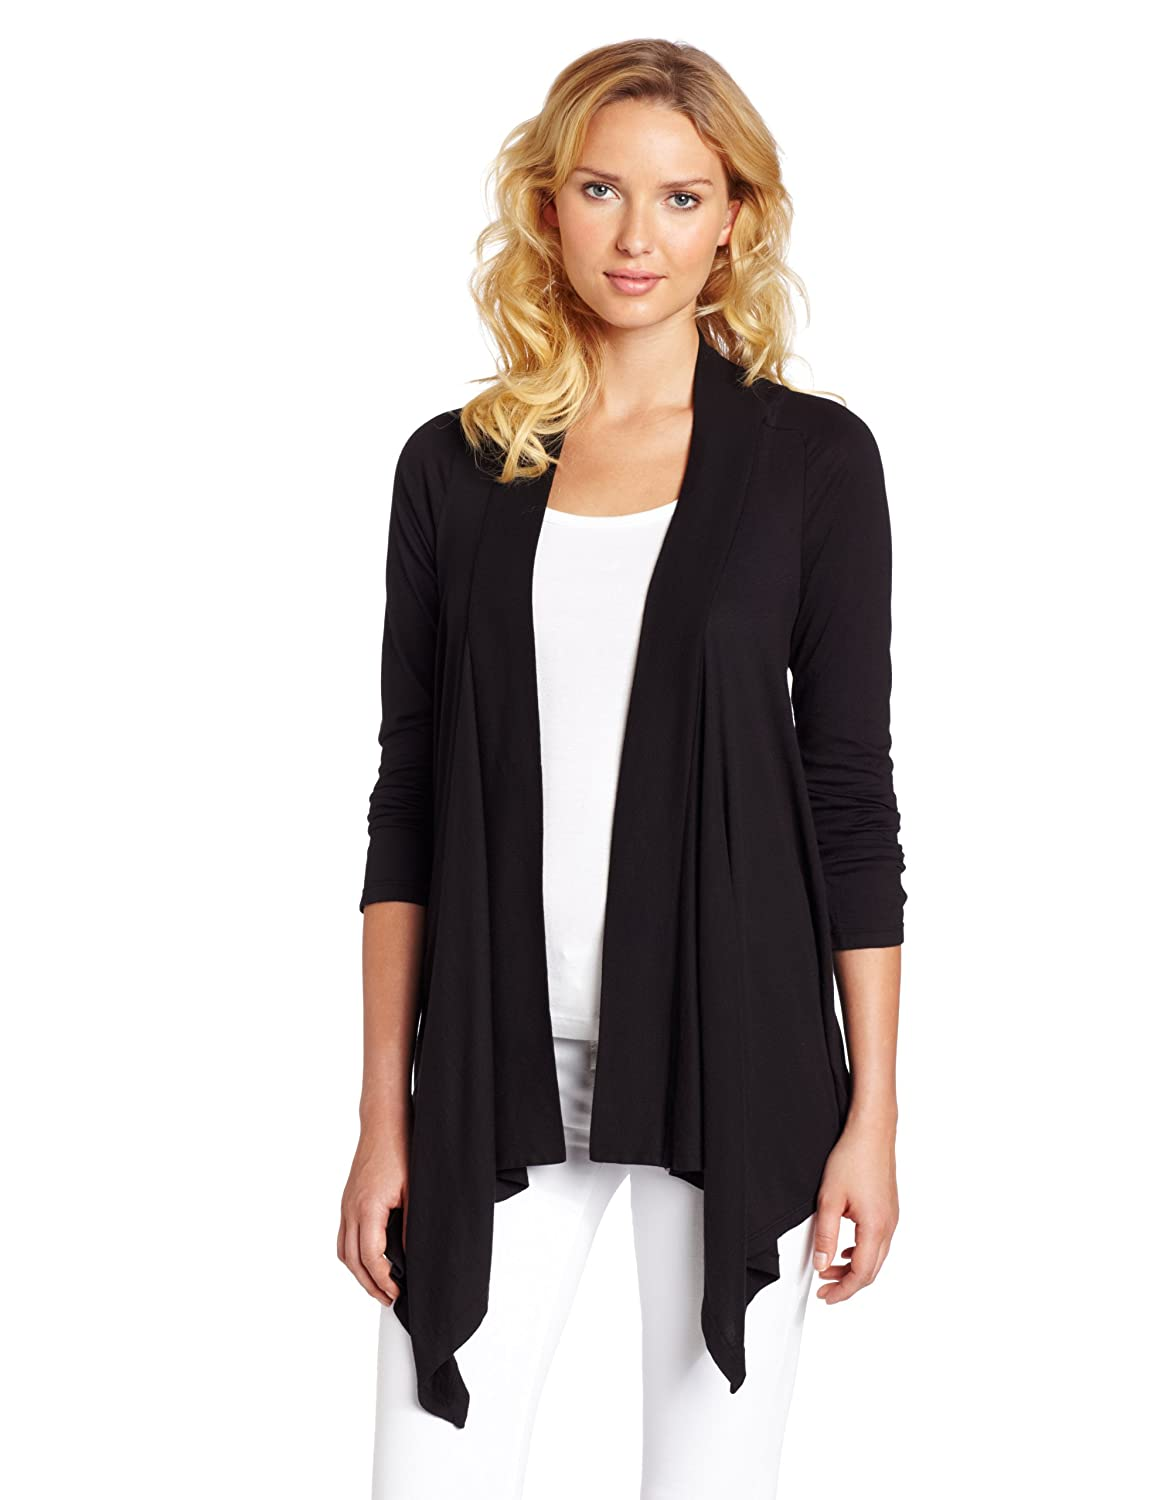 Amazon.com: Splendid Women's Jersey Wrap Cardigan: Clothing